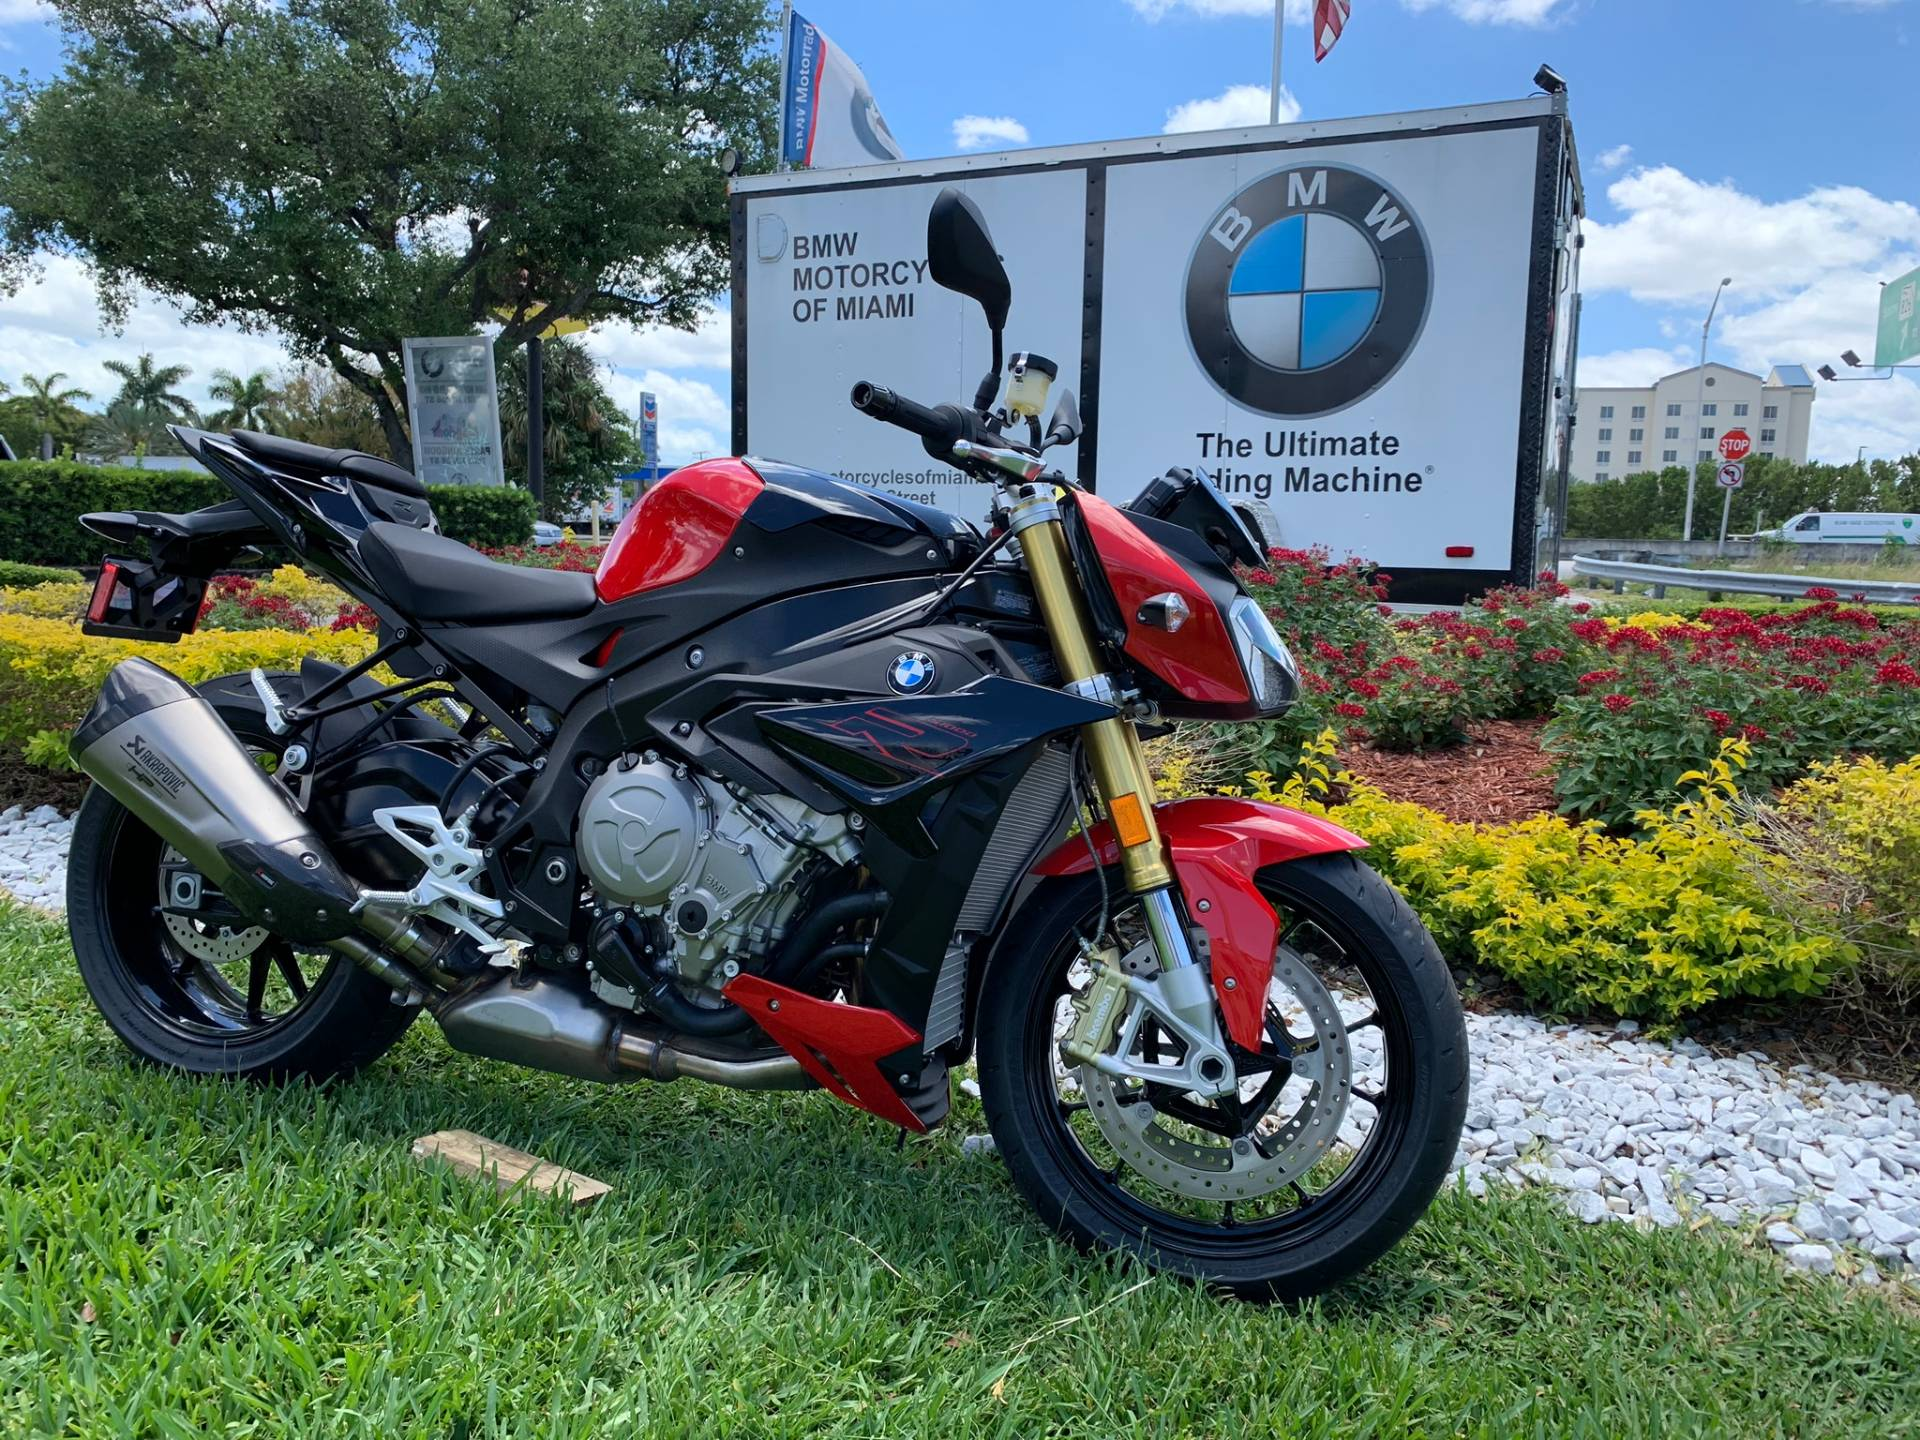 New 2019 BMW S 1000 R for sale, BMW S 1000R for sale, BMW Motorcycle S1000R, new BMW R, Sport, roadster, naked. BMW Motorcycles of Miami, Motorcycles of Miami, Motorcycles Miami, New Motorcycles, Used Motorcycles, pre-owned. #BMWMotorcyclesOfMiami #MotorcyclesOfMiami #MotorcyclesMiami - Photo 19